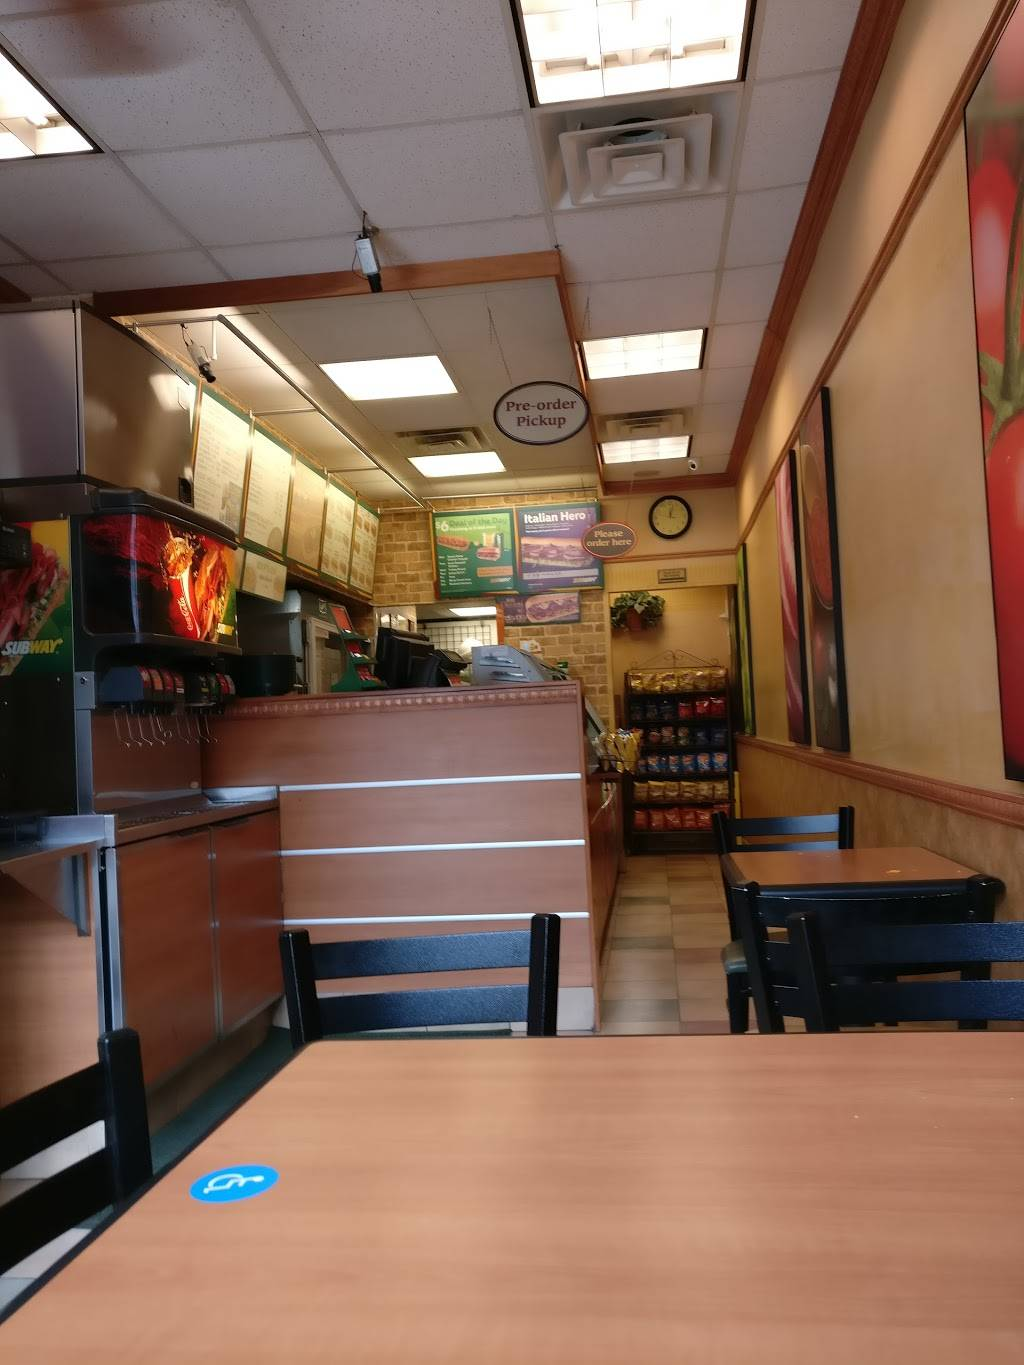 Subway Restaurants | restaurant | 3942 21st St, Long Island City, NY 11101, USA | 7183615700 OR +1 718-361-5700